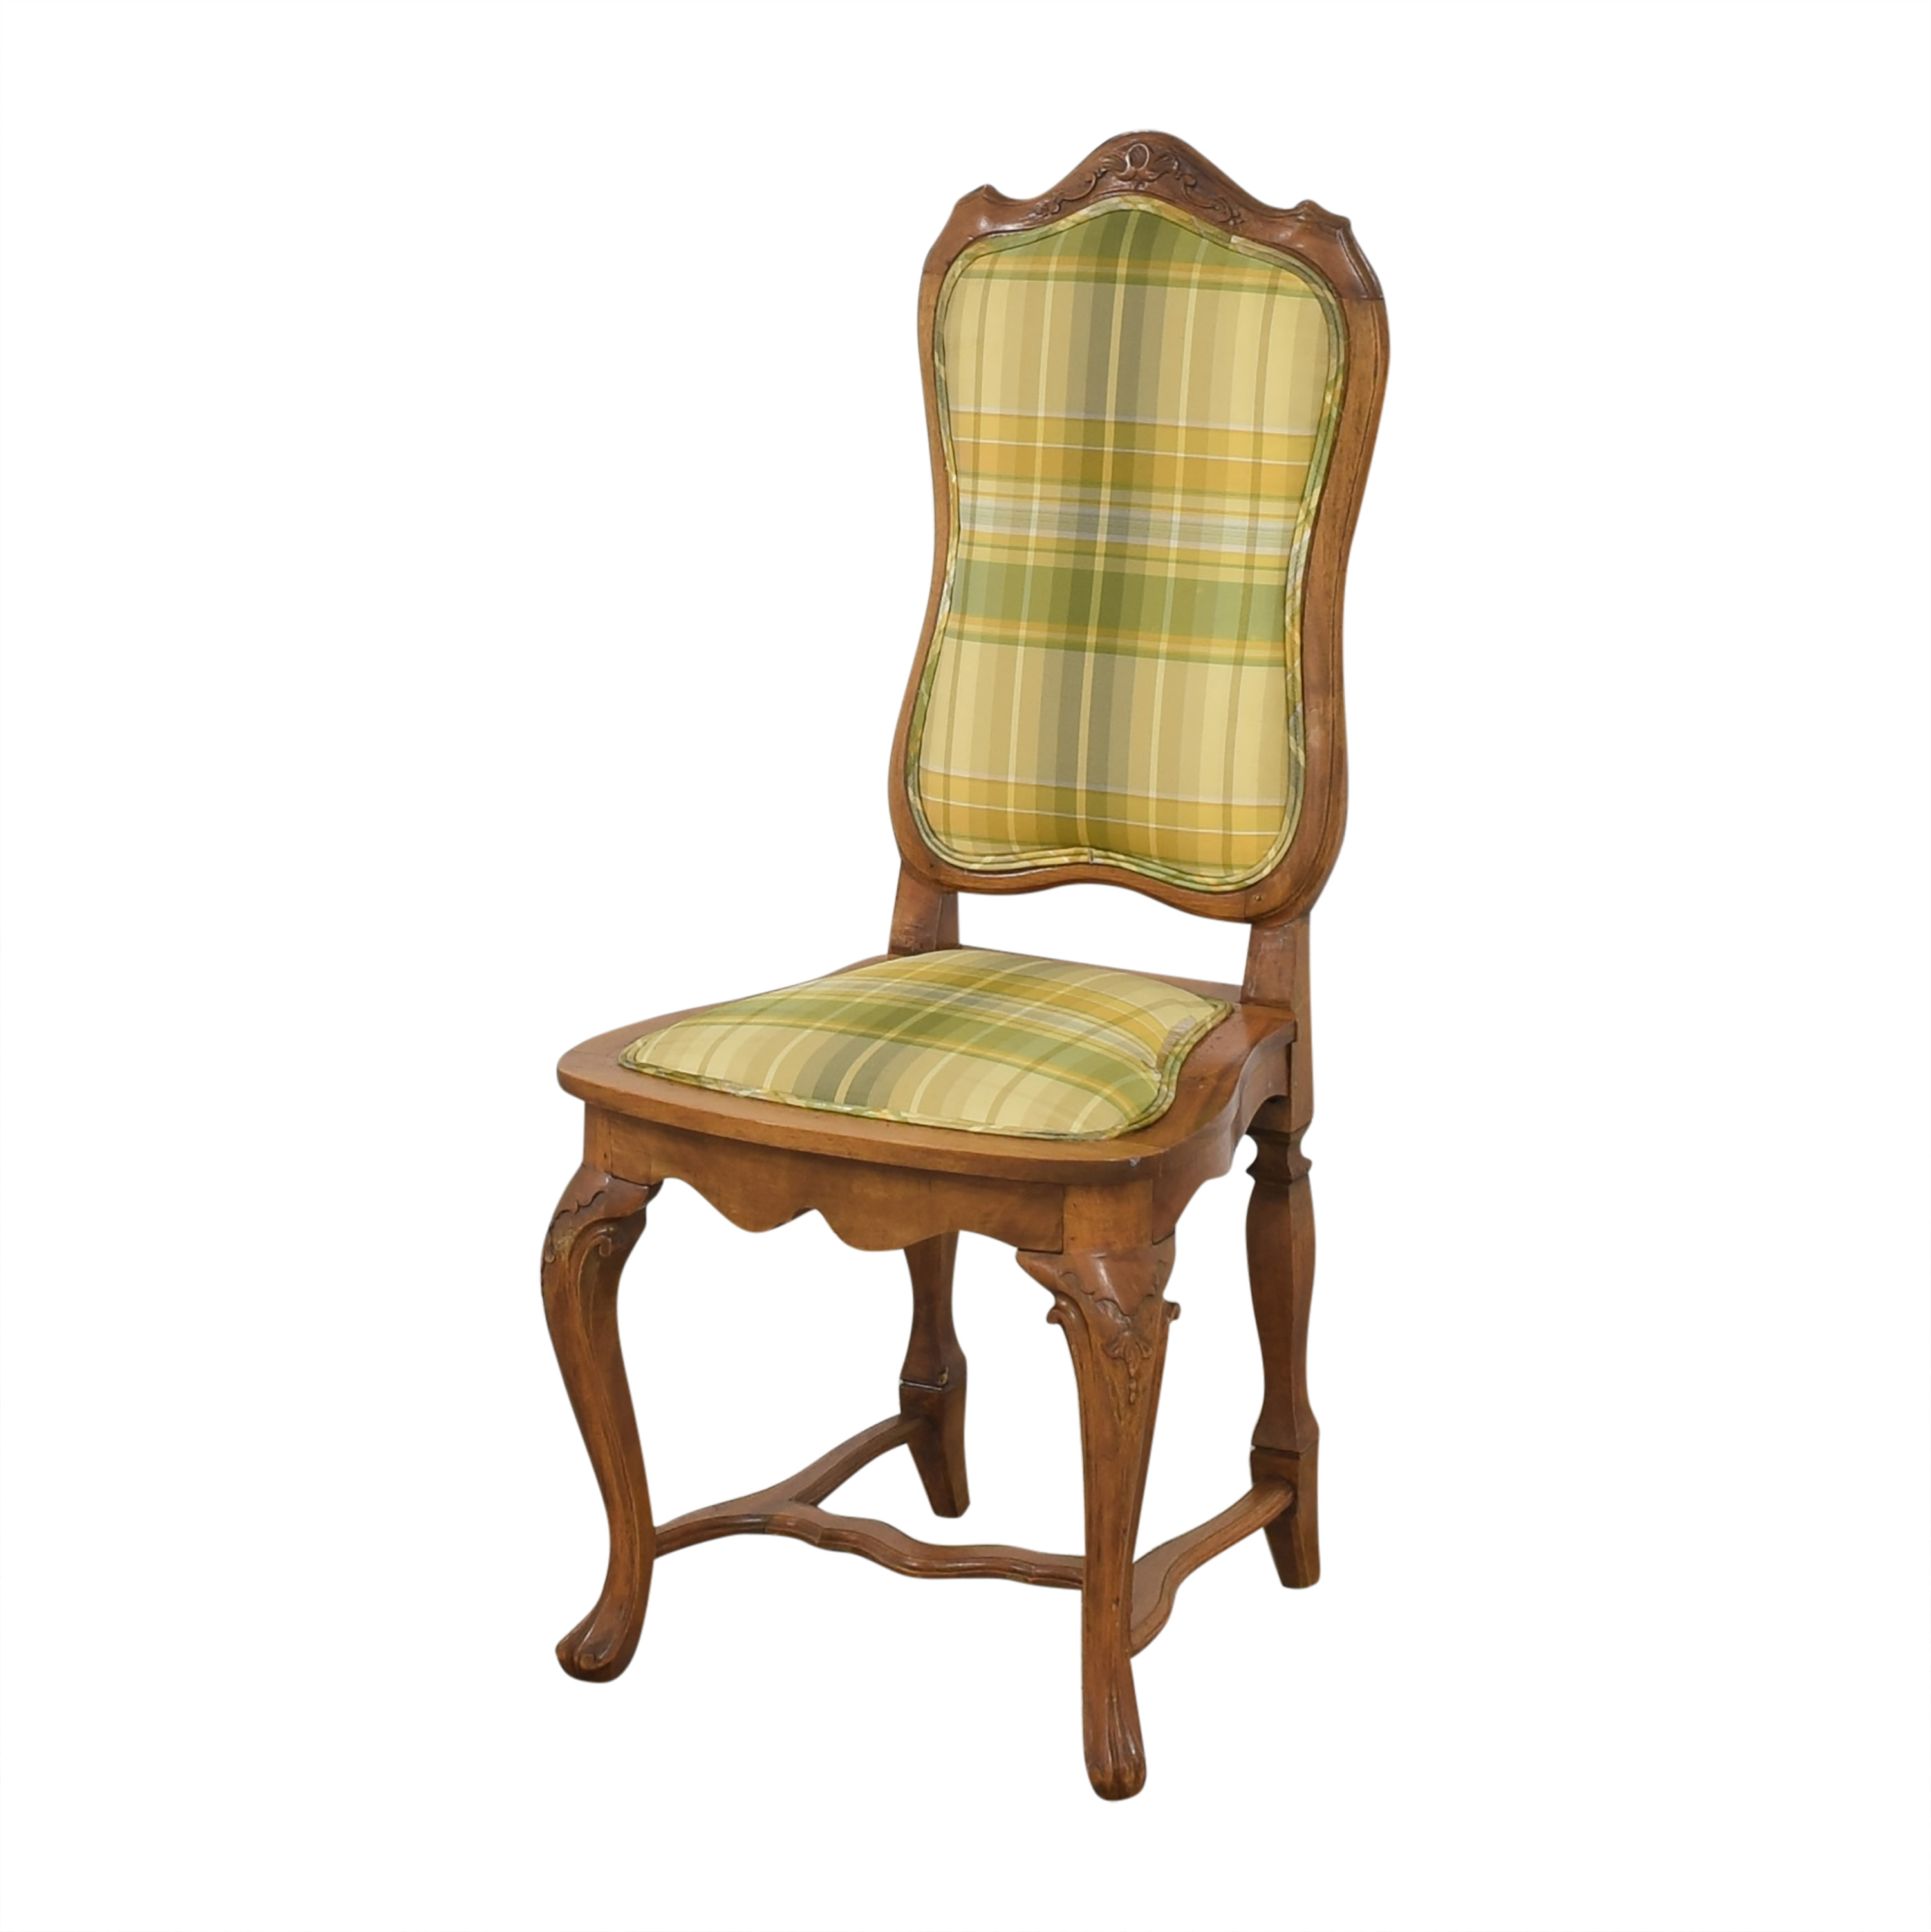 Italian Upholstered Dining Chairs / Chairs